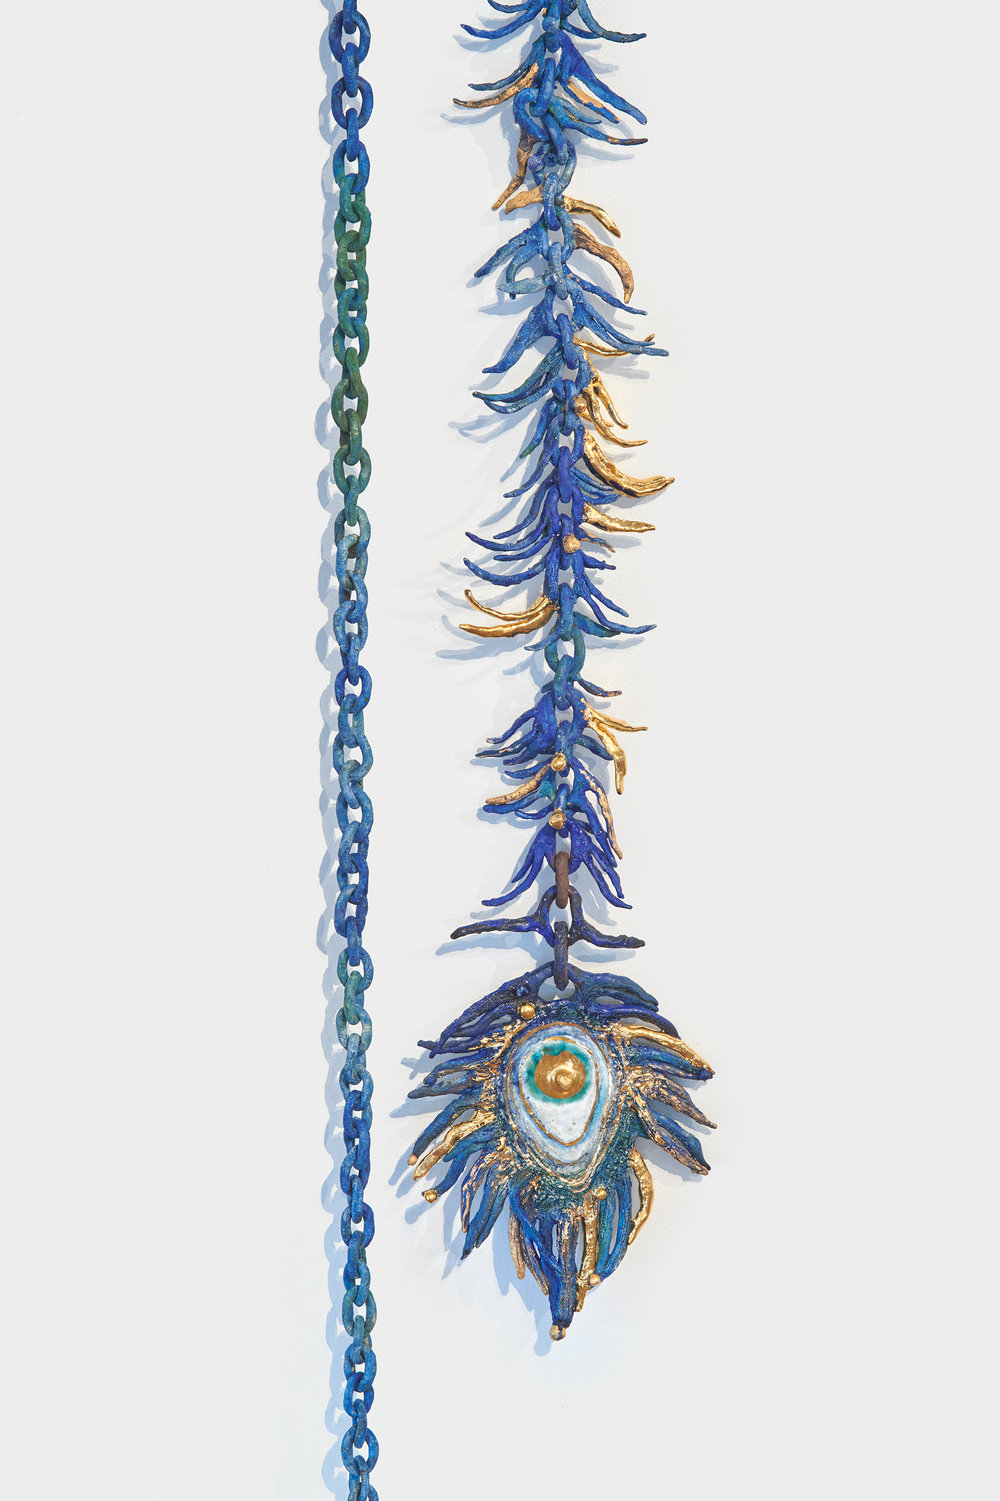 Heidi Lau,  The Blue Peacock,  2018. Ceramics and gold luster, 102 x 8 x 3 cm. Courtesy of Geary.